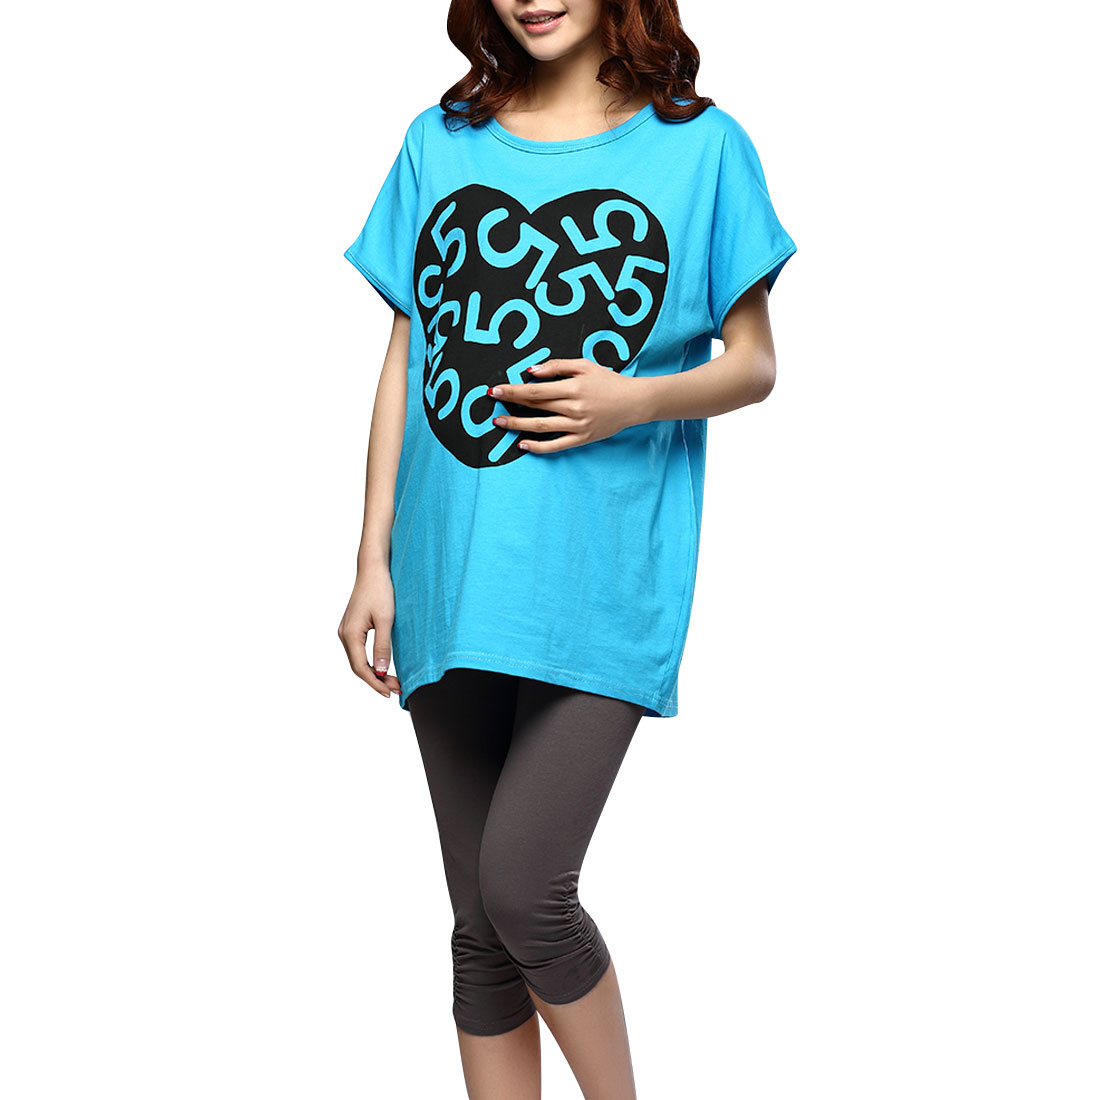 Pregnant Women Round Neck Short Sleeve Casual Shirt Sky Blue L